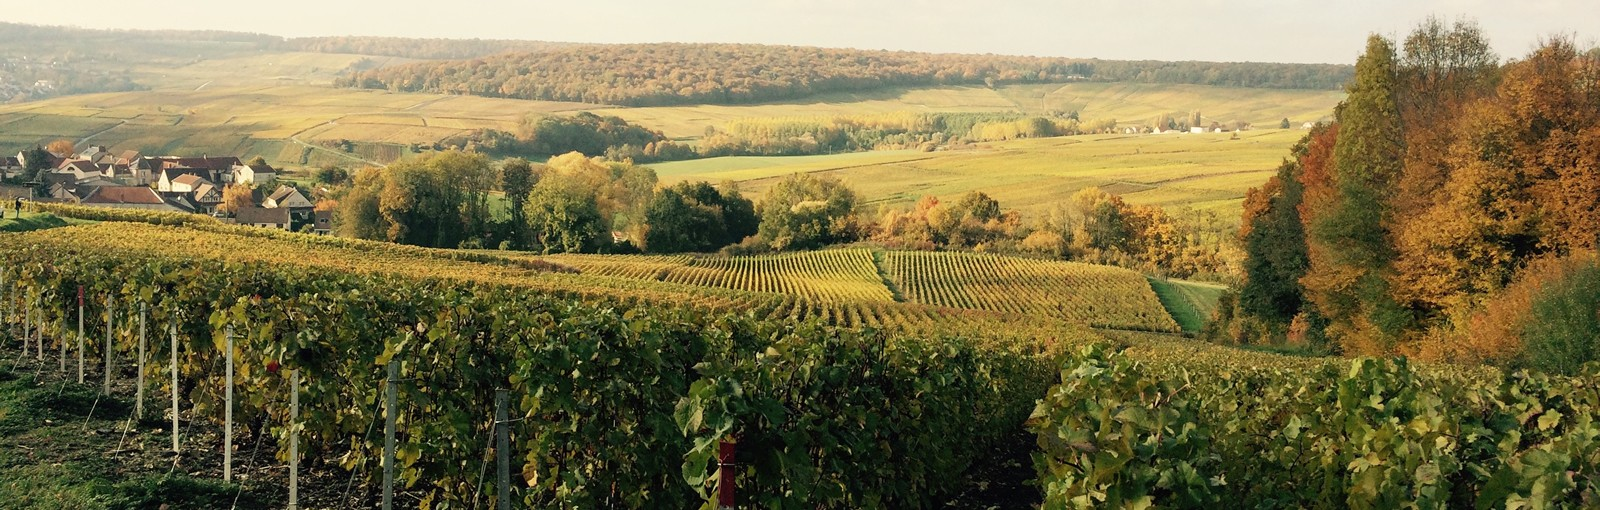 Tours Champagne - Burgundy - Multi-regional - Multiday tours from Paris